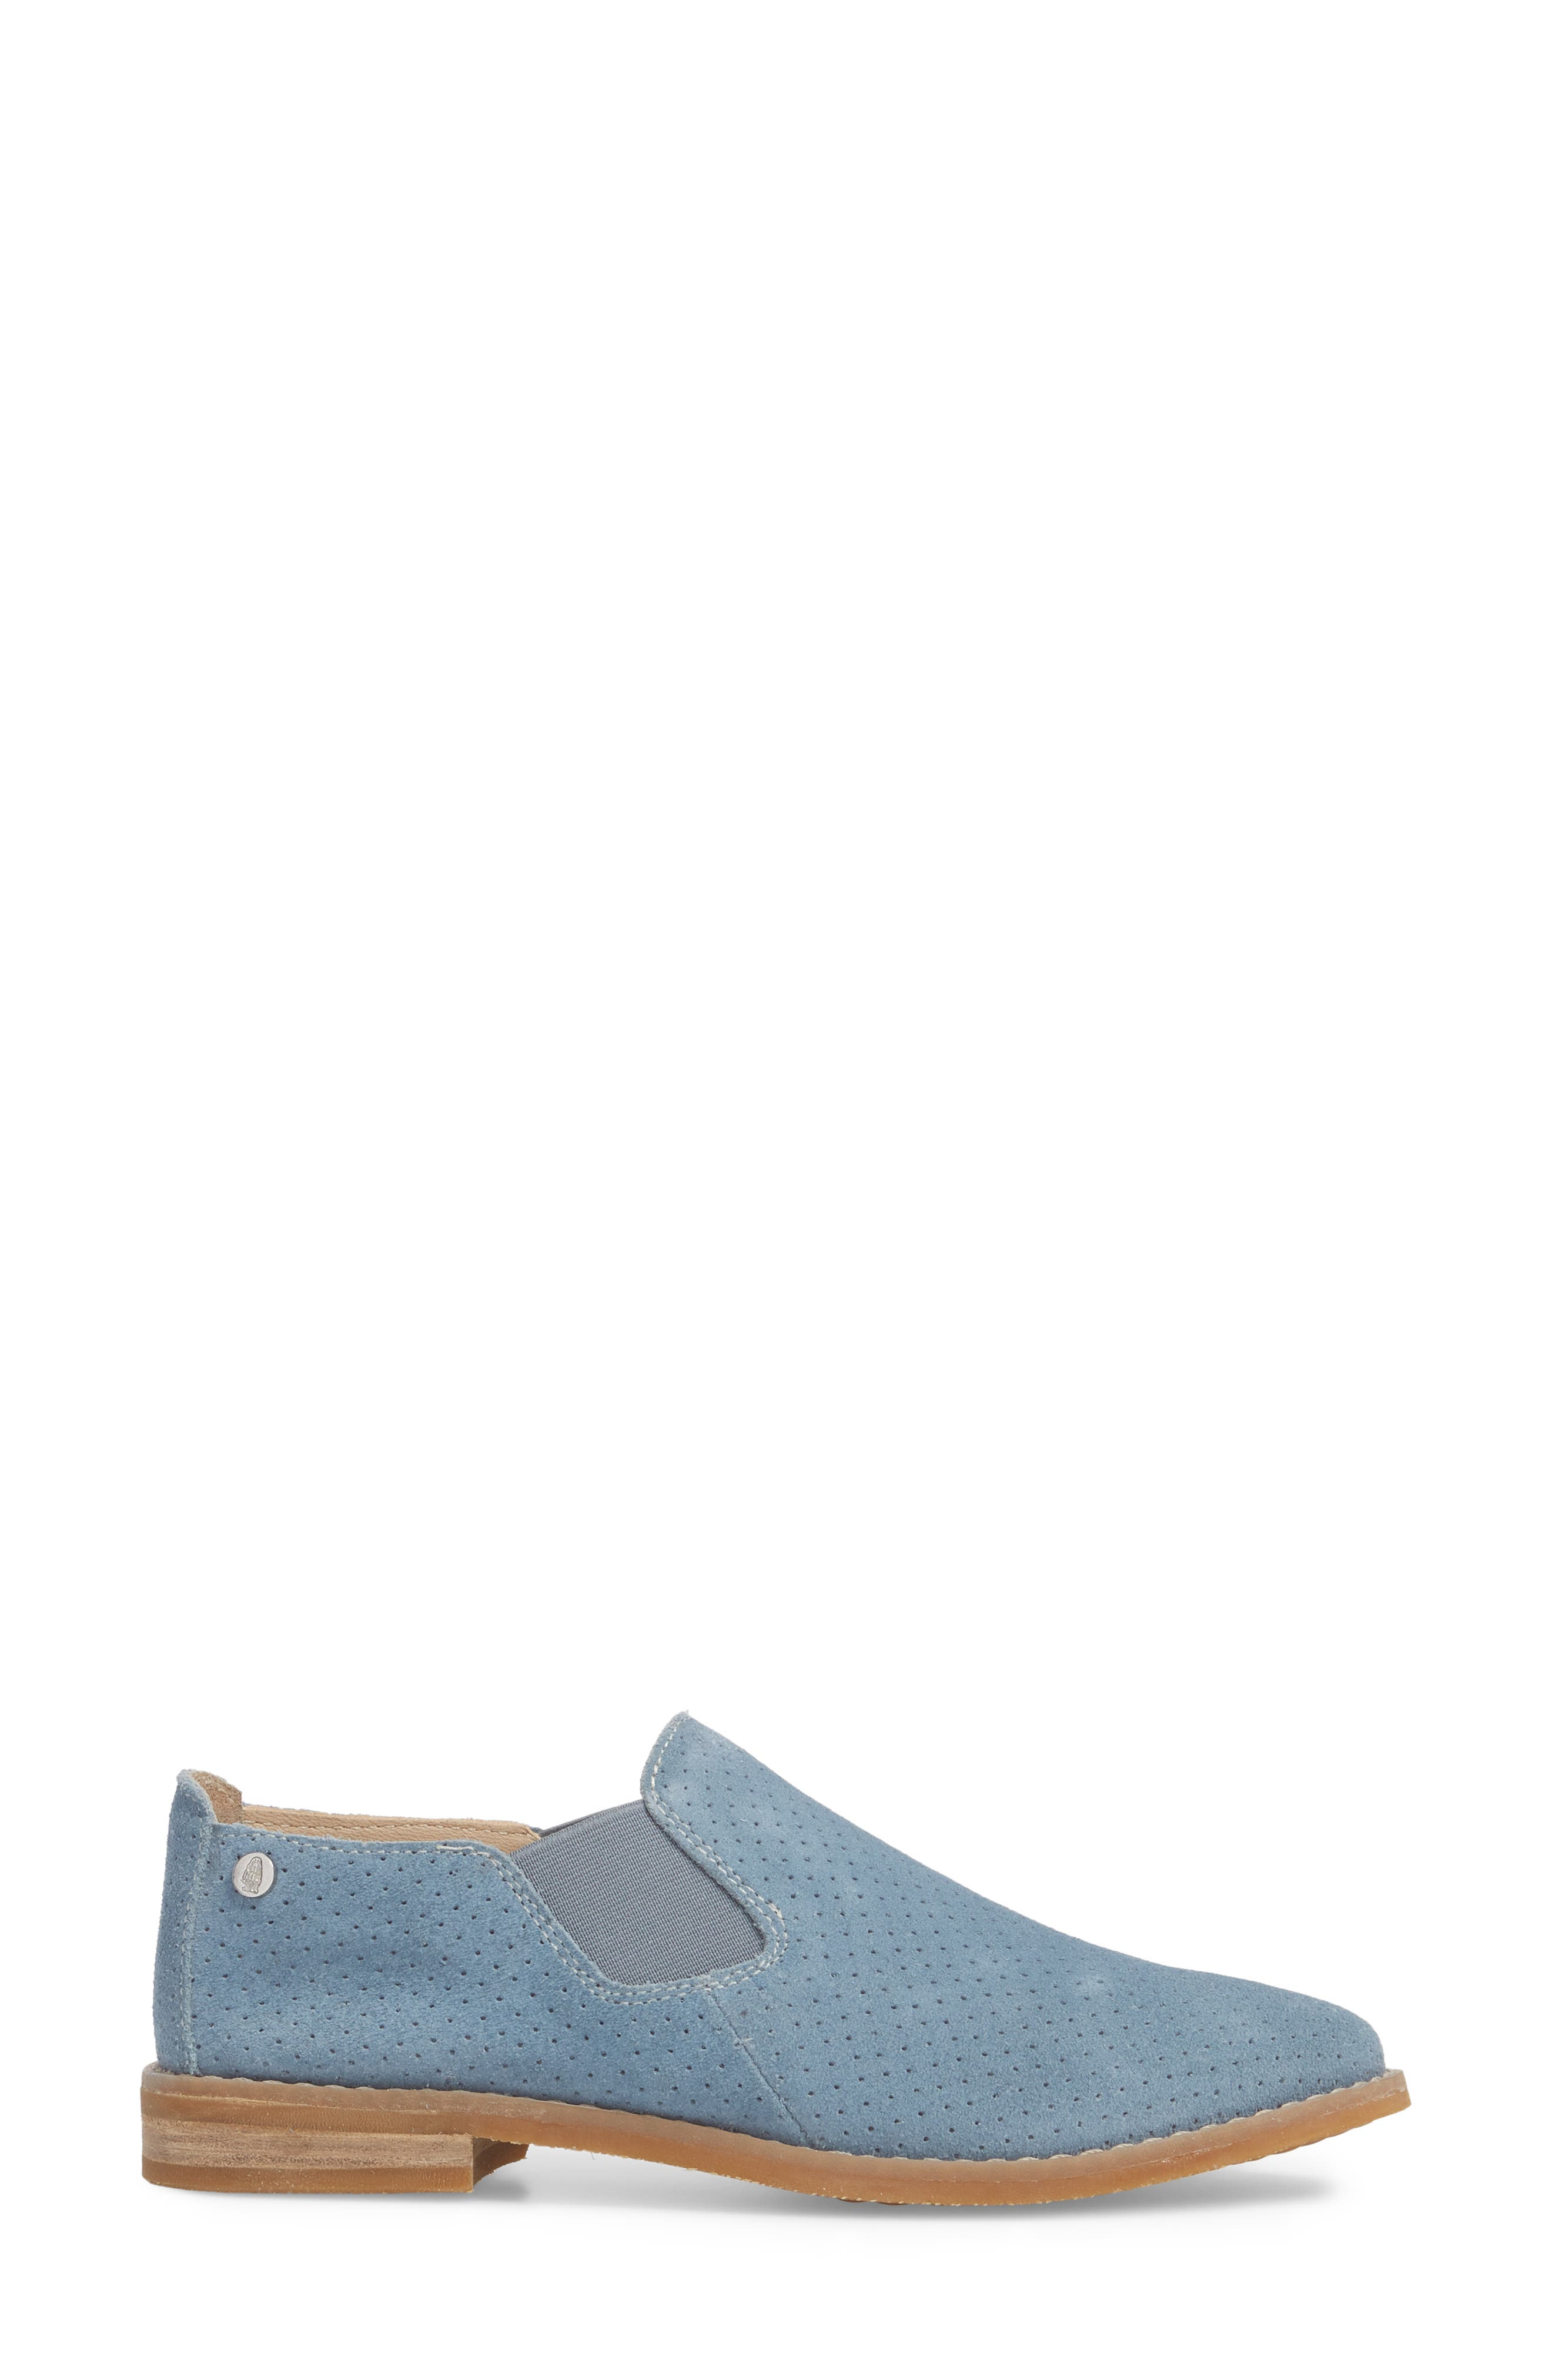 Hush Puppies Analise Clever Slip-On,                             Alternate thumbnail 3, color,                             VINTAGE INDIGO SUEDE